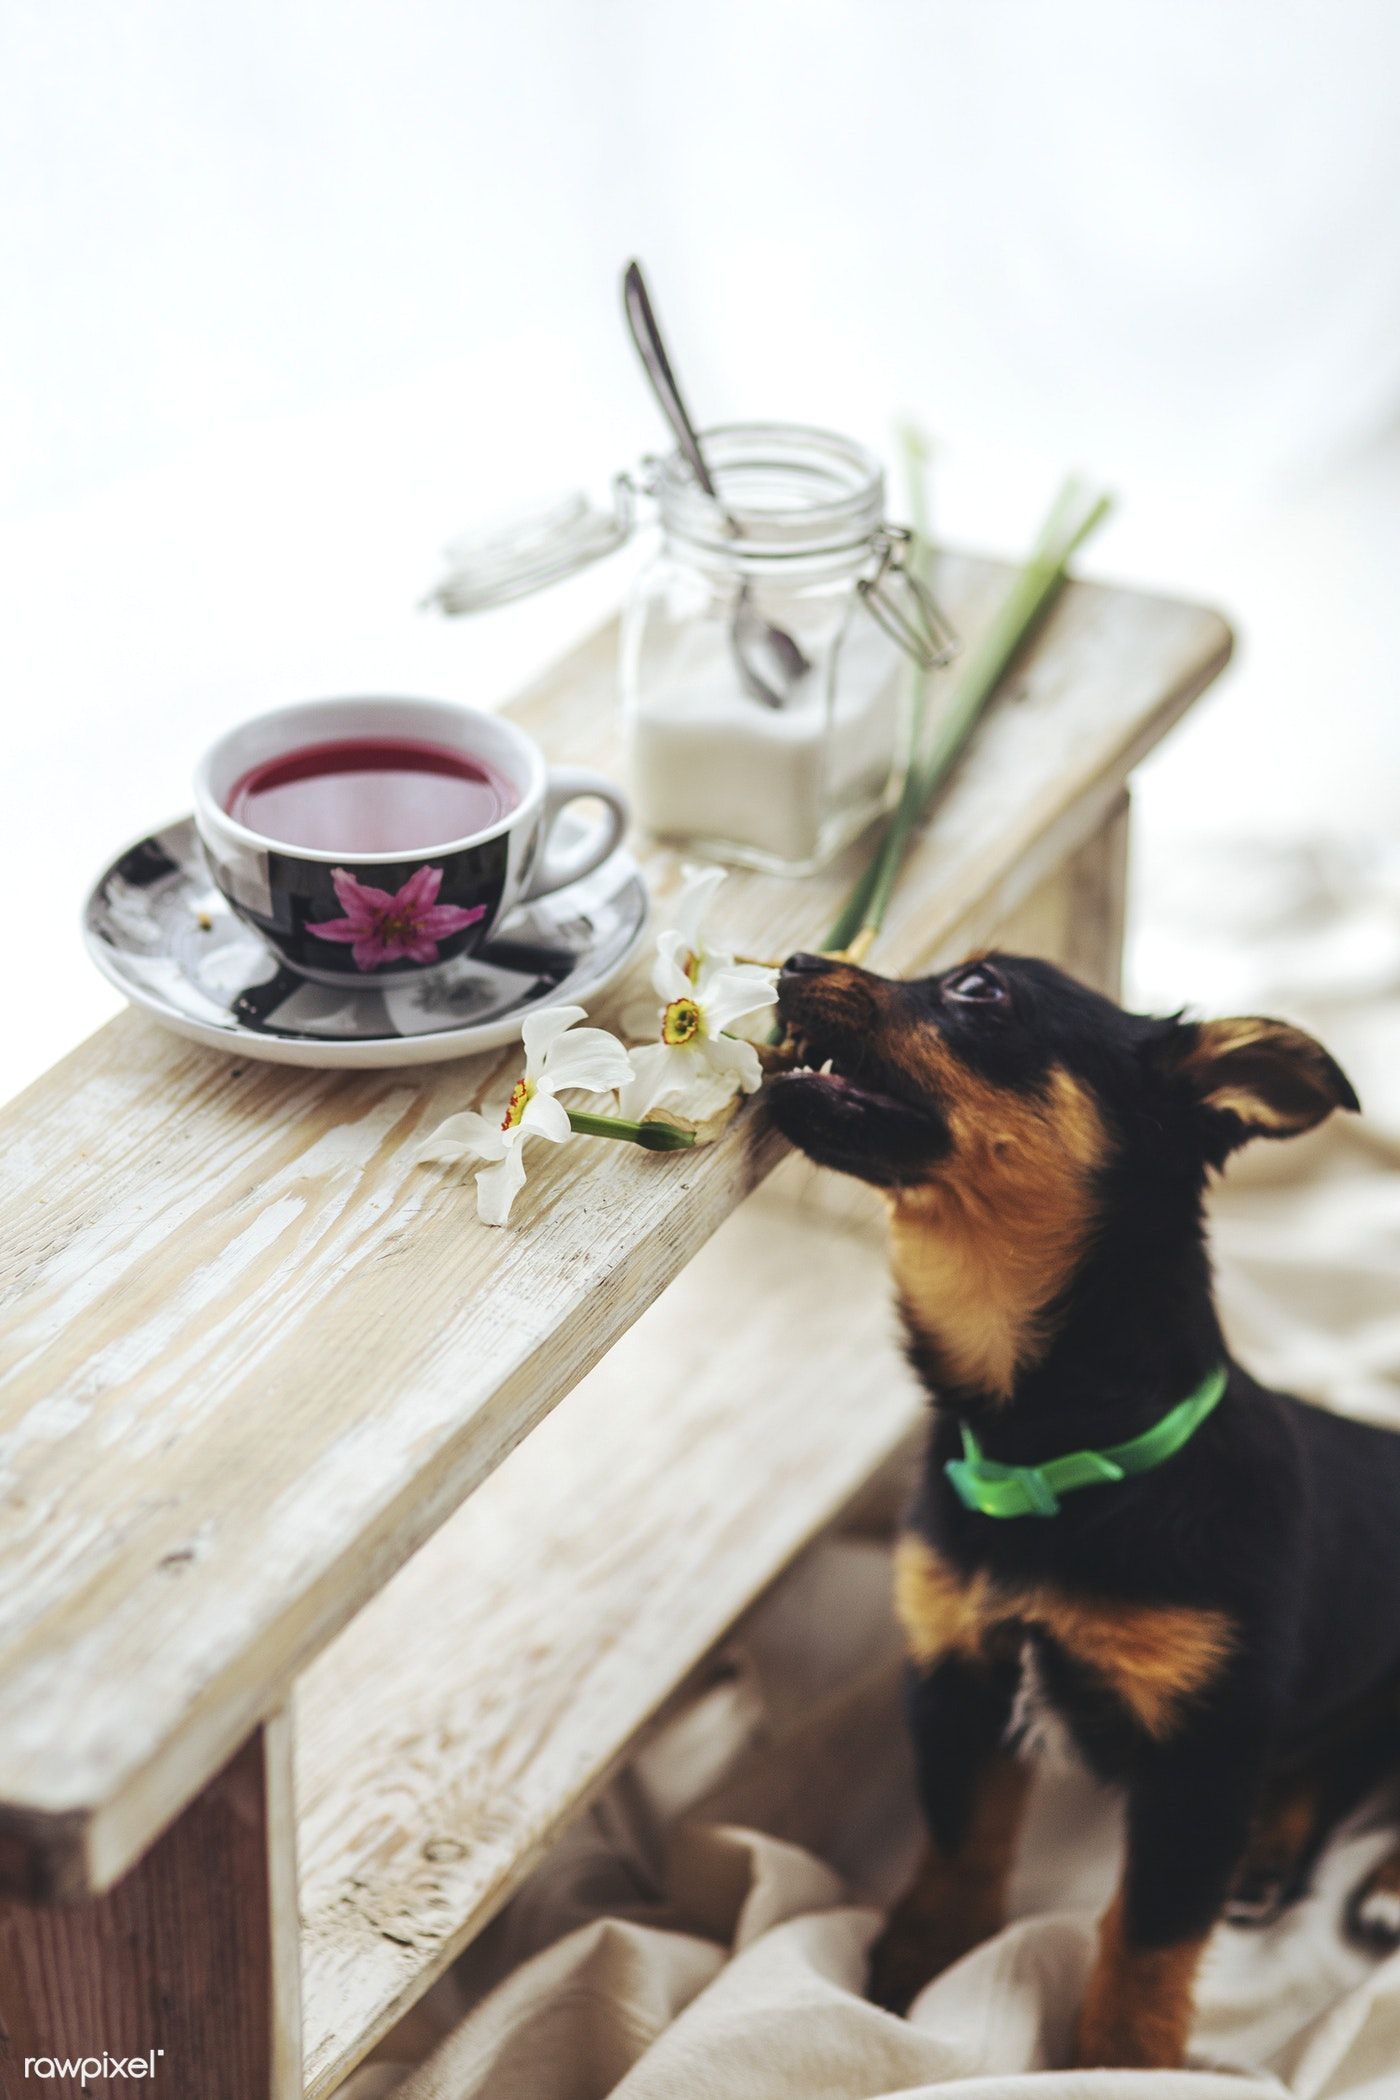 Small black puppy by a table free image by